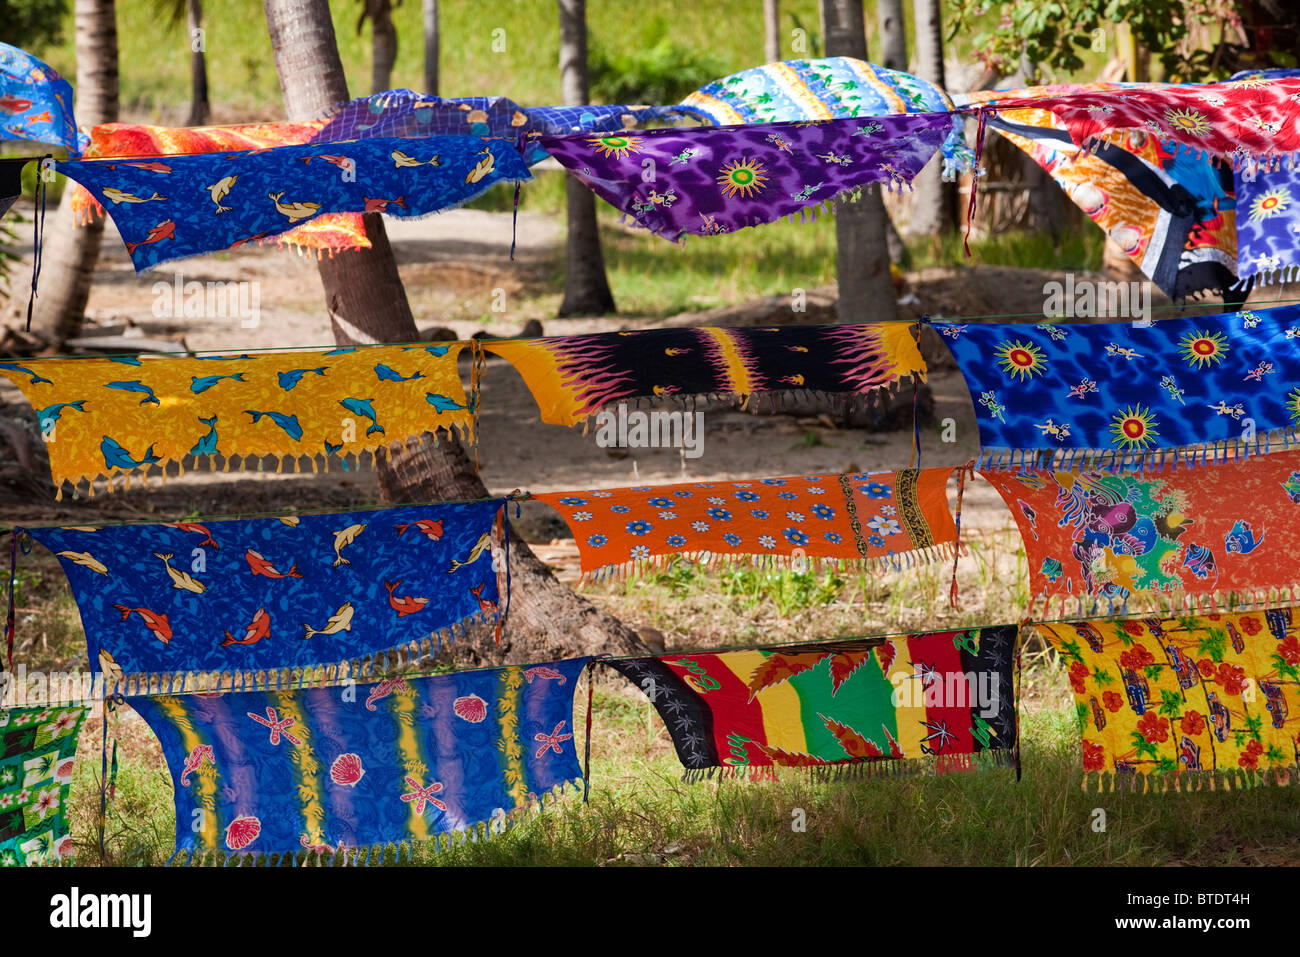 Colourful printed cloths for sale at a roadside stall - Stock Image